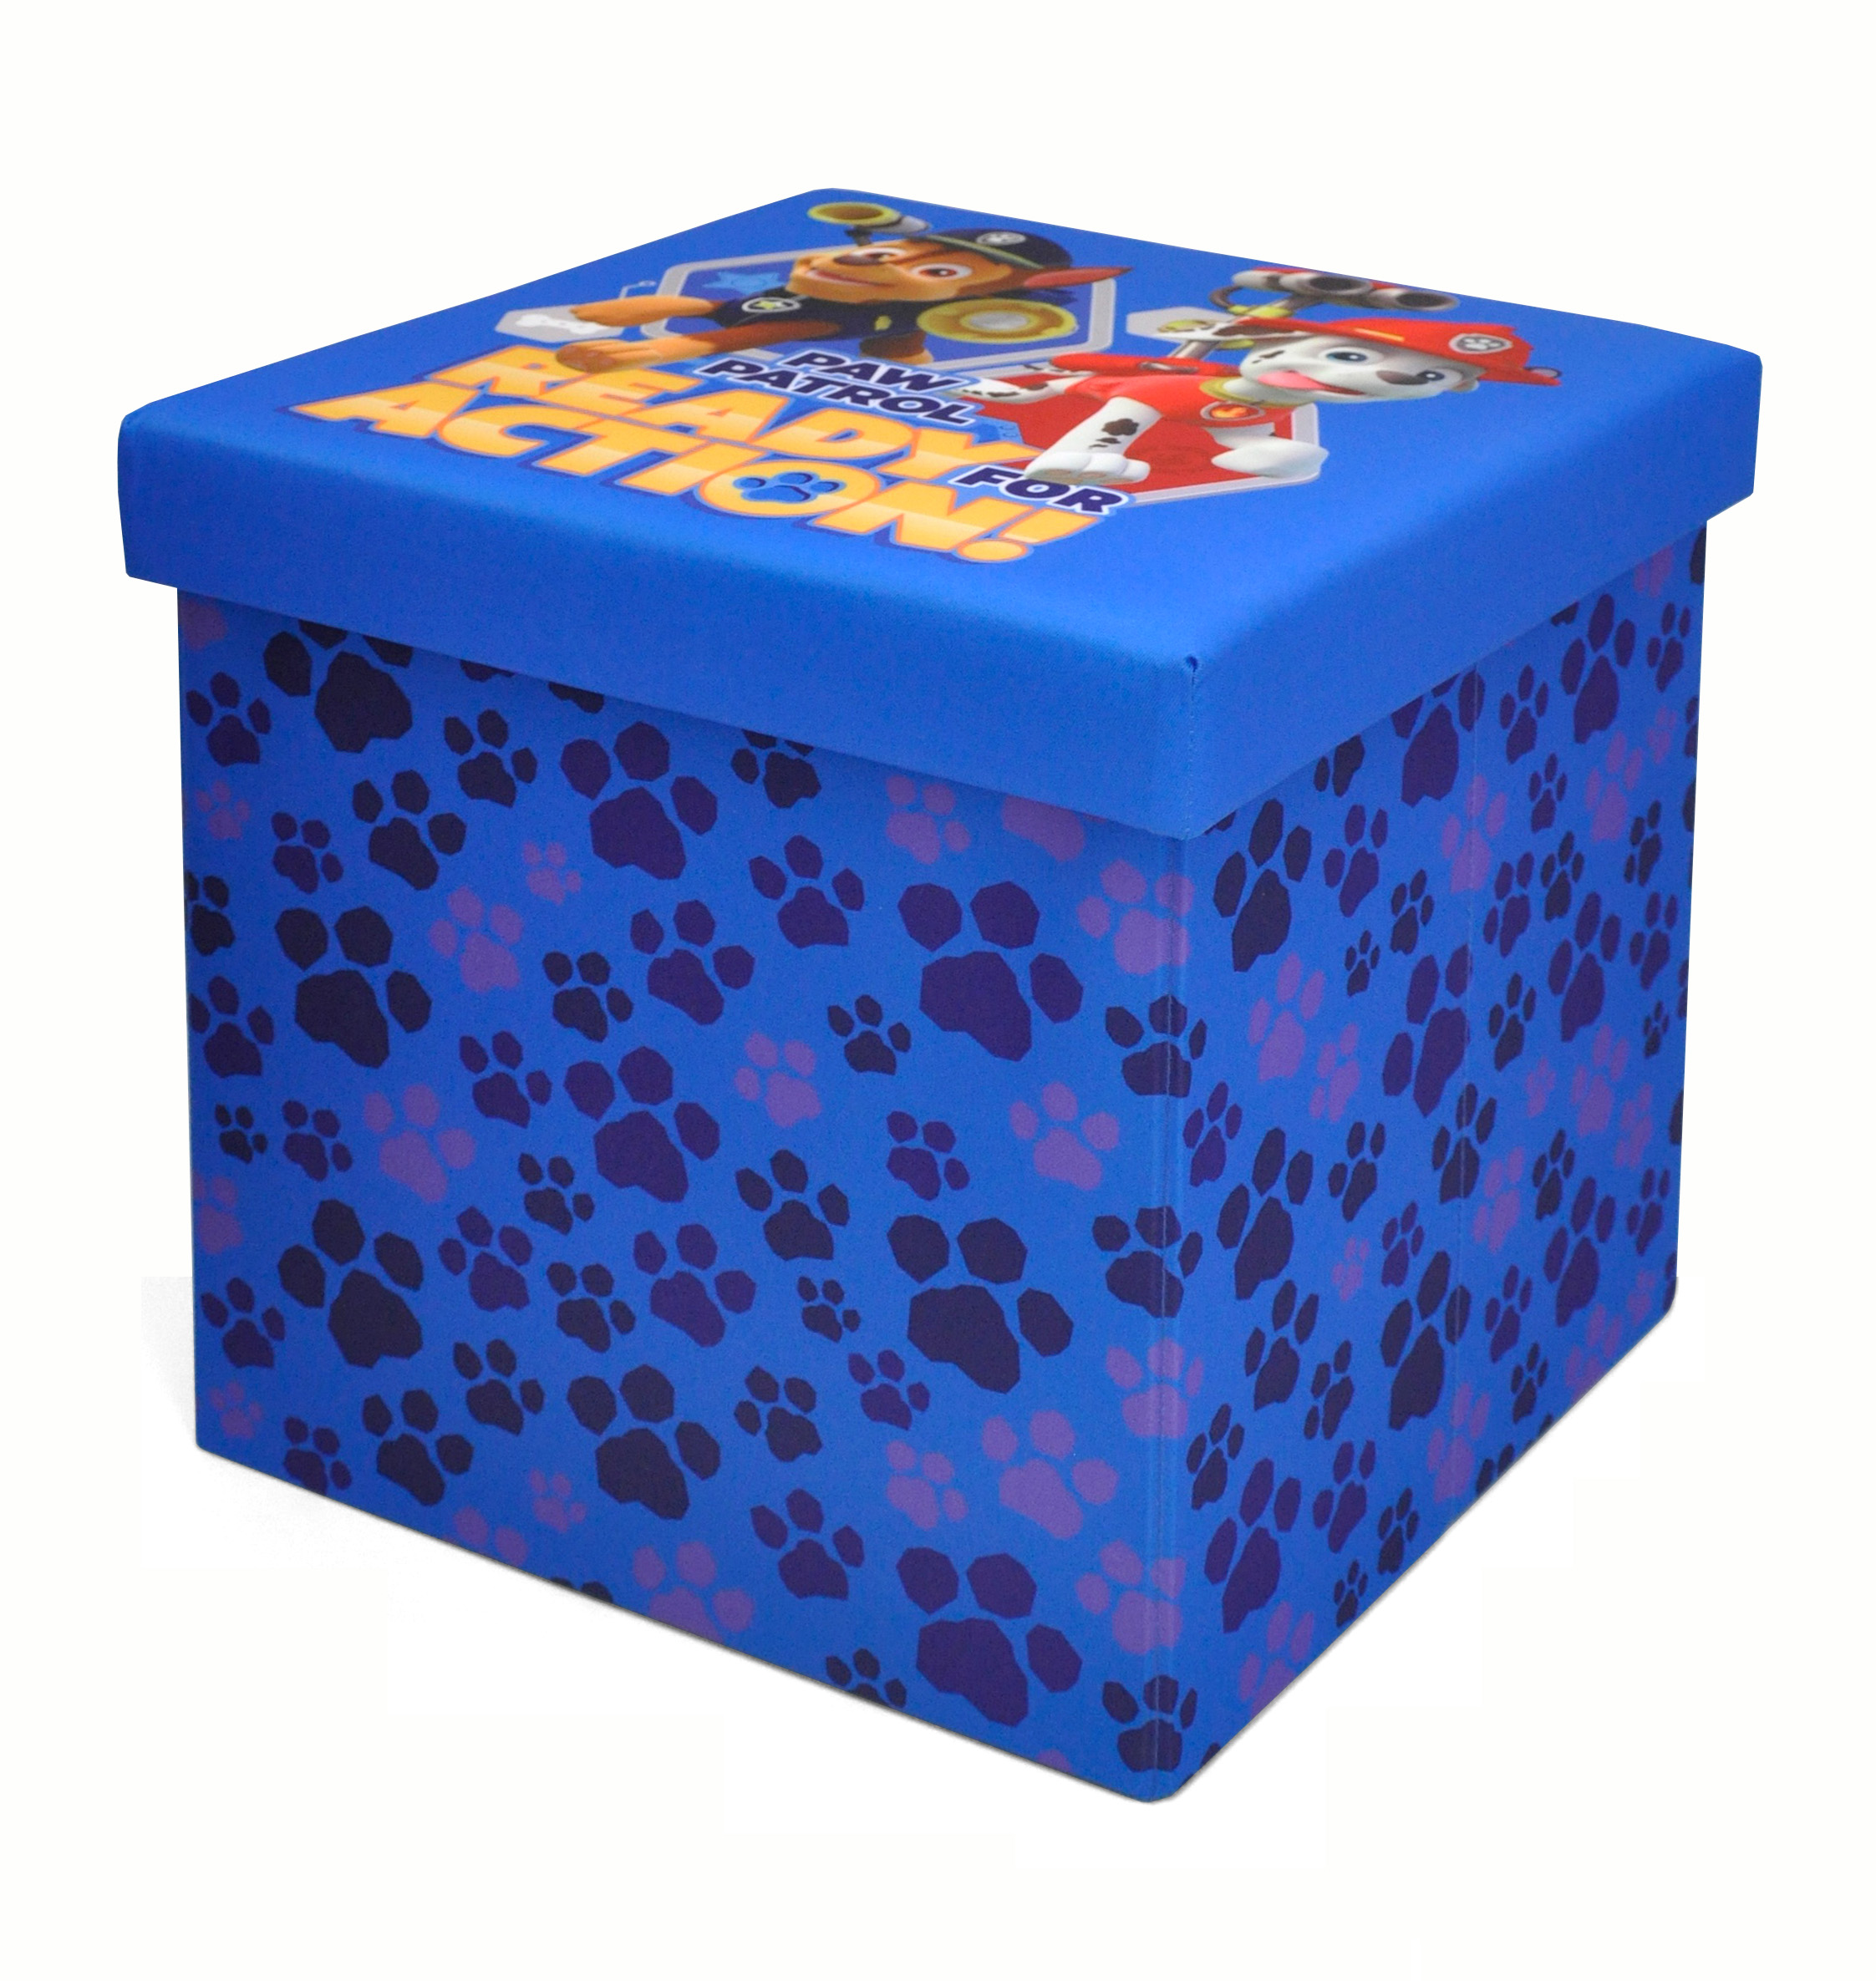 Nickelodeon Paw Patrol Collapsible Storage Ottoman